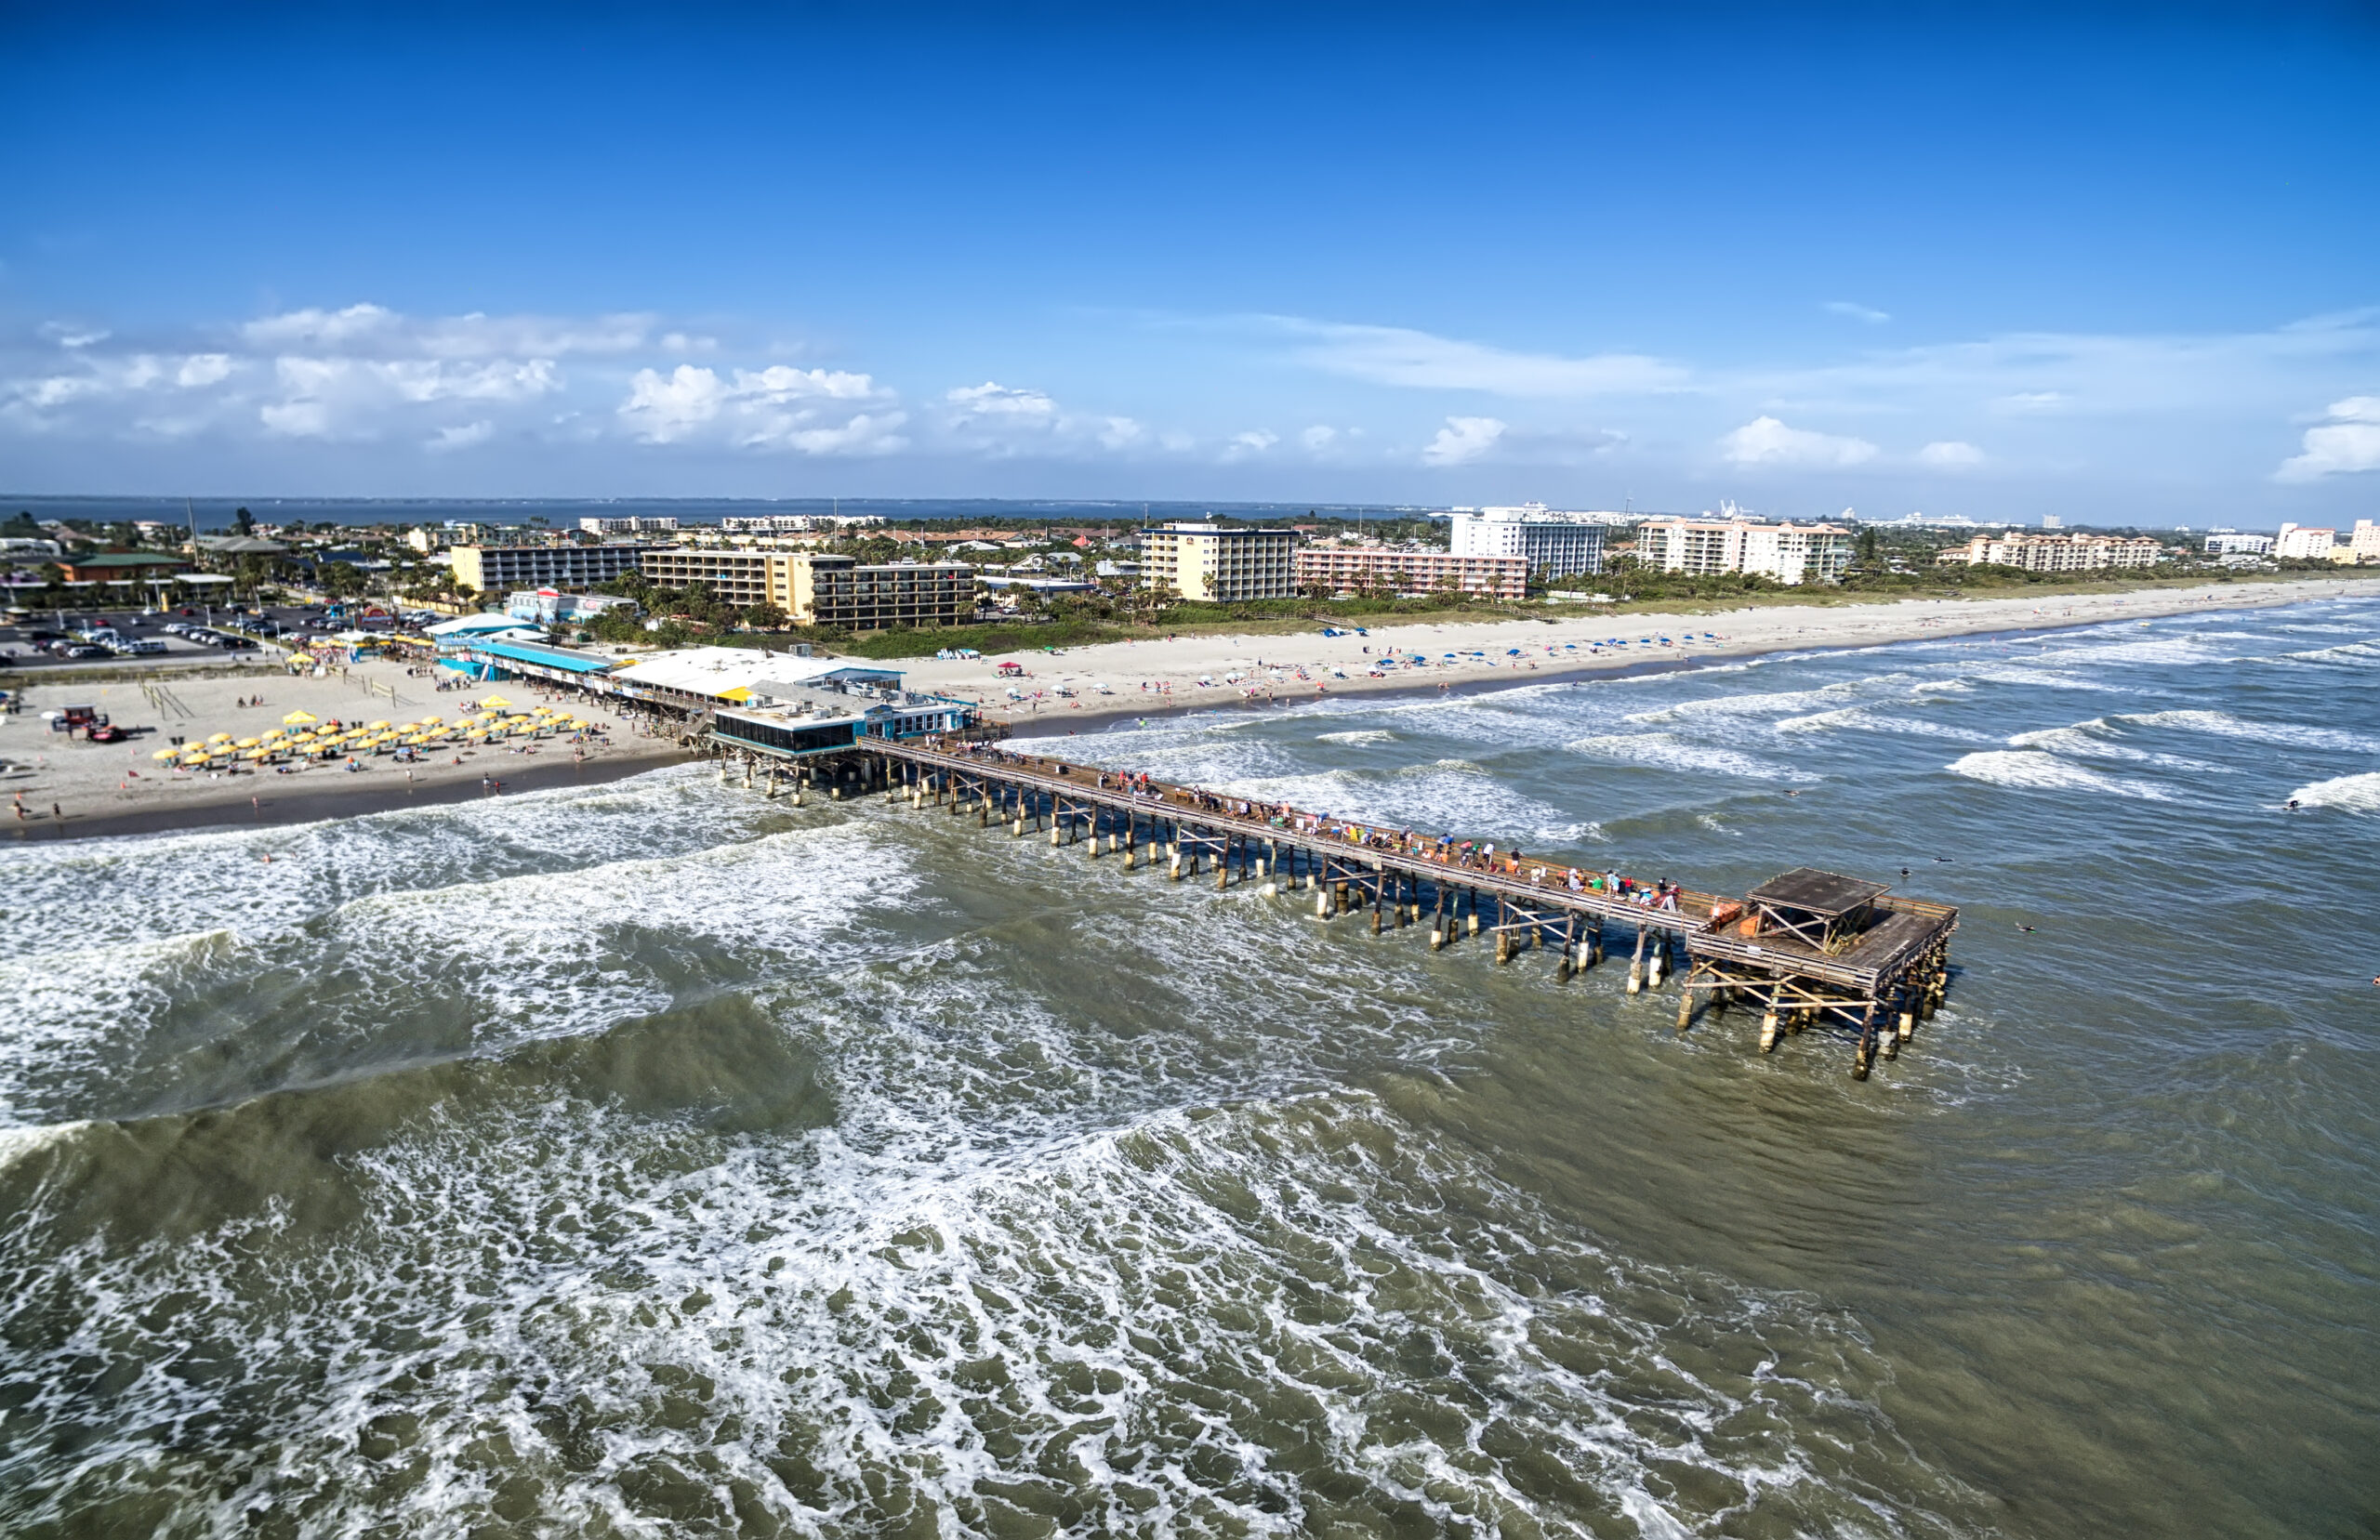 Daytime Cocoa Beach Pier aerial view, Cape Canaveral, Florida. Photo credit ShutterStock.com, licensed.